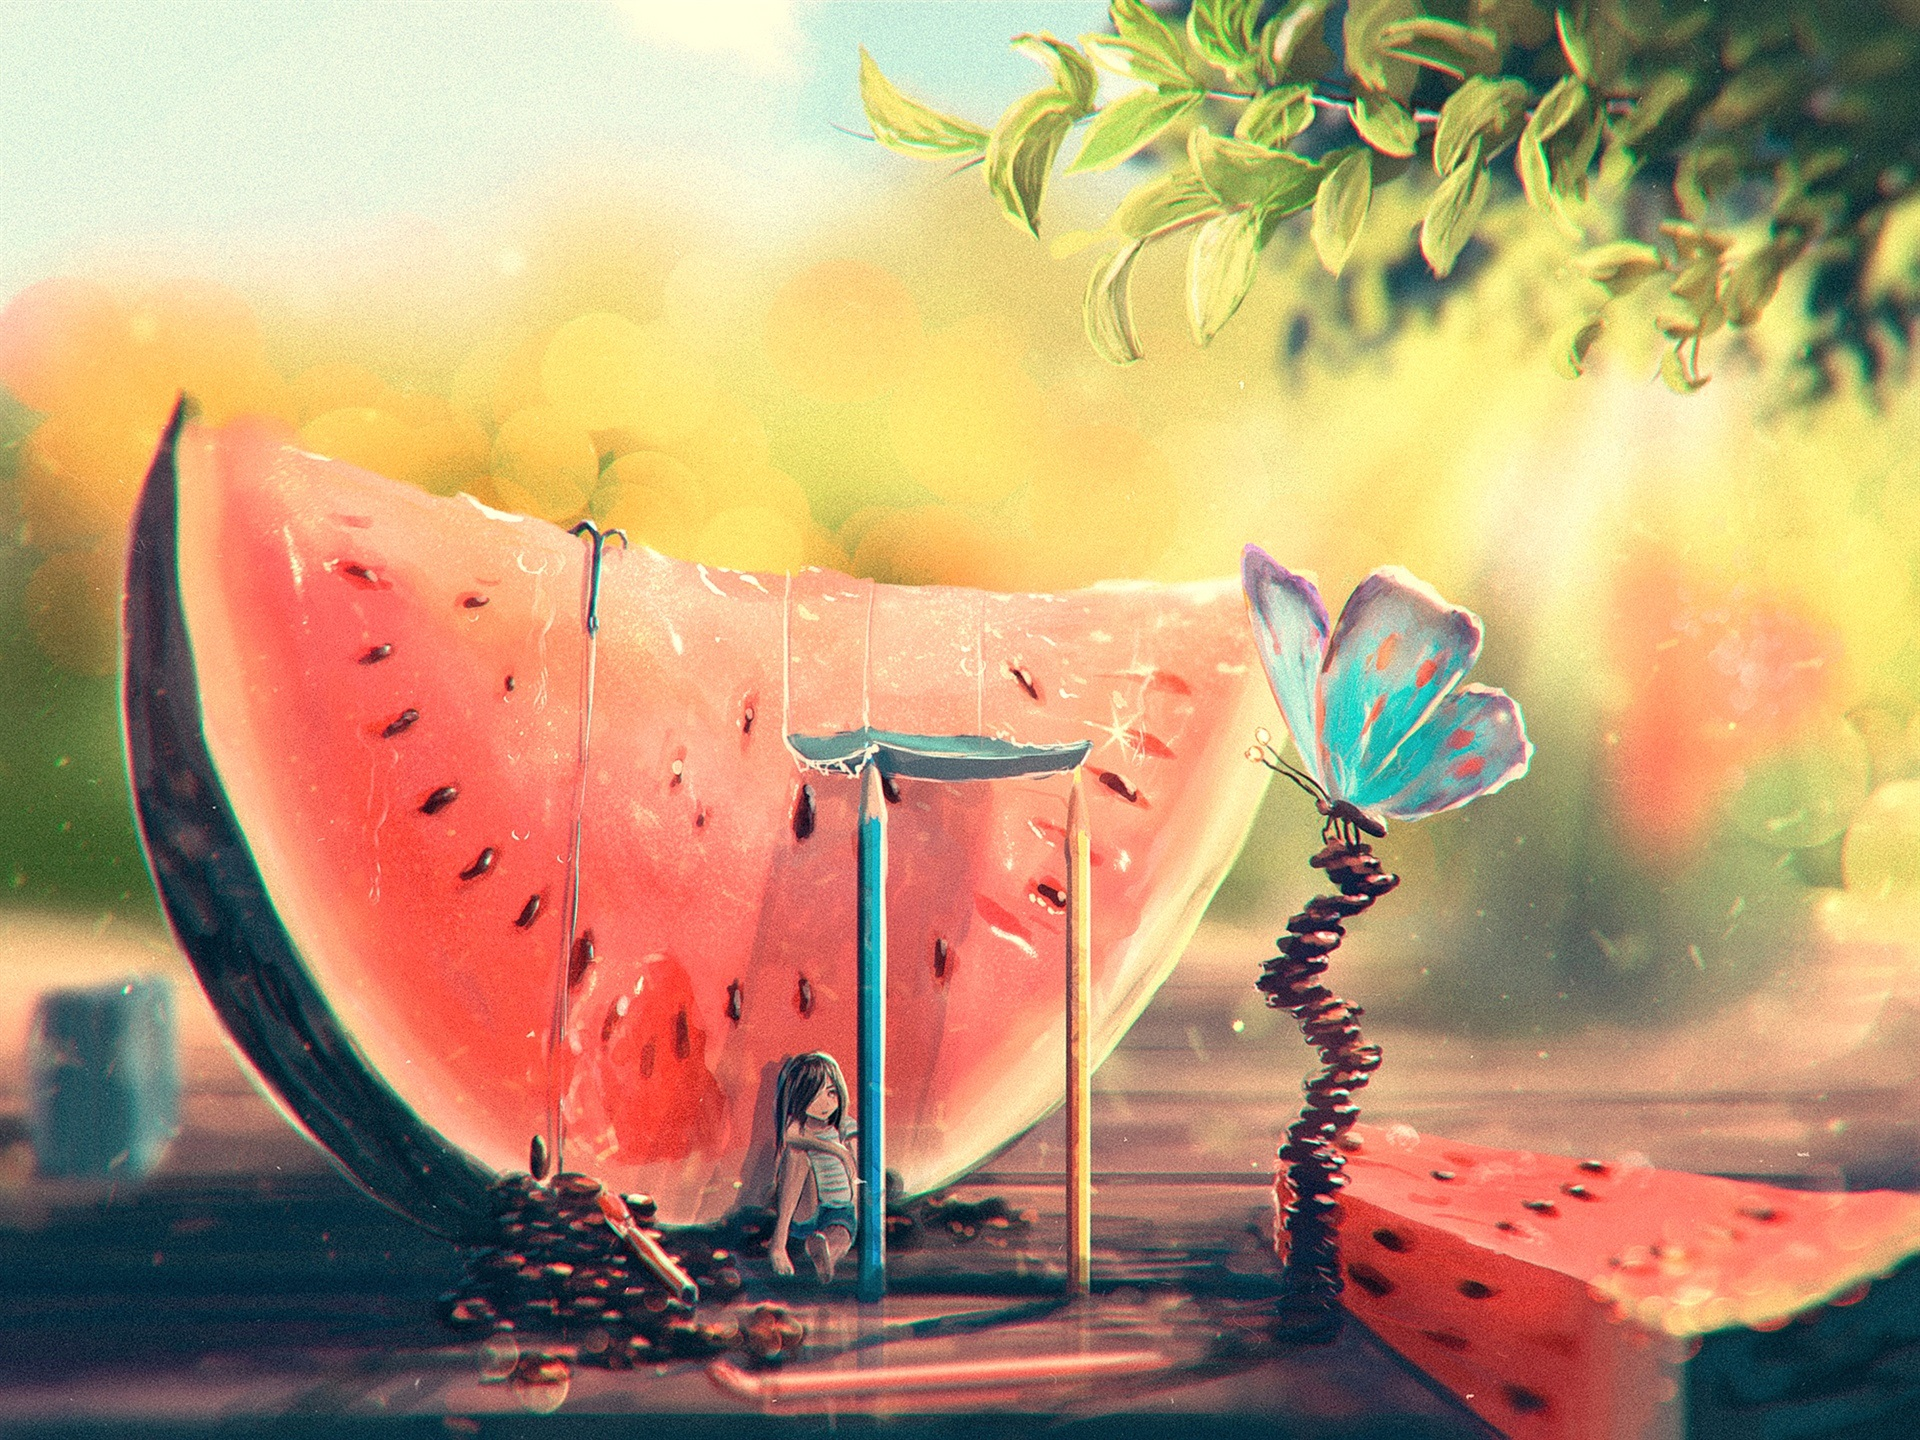 Cute Emo Wallpapers For Iphone Summer Watermelon Girl Butterfly Art Painting